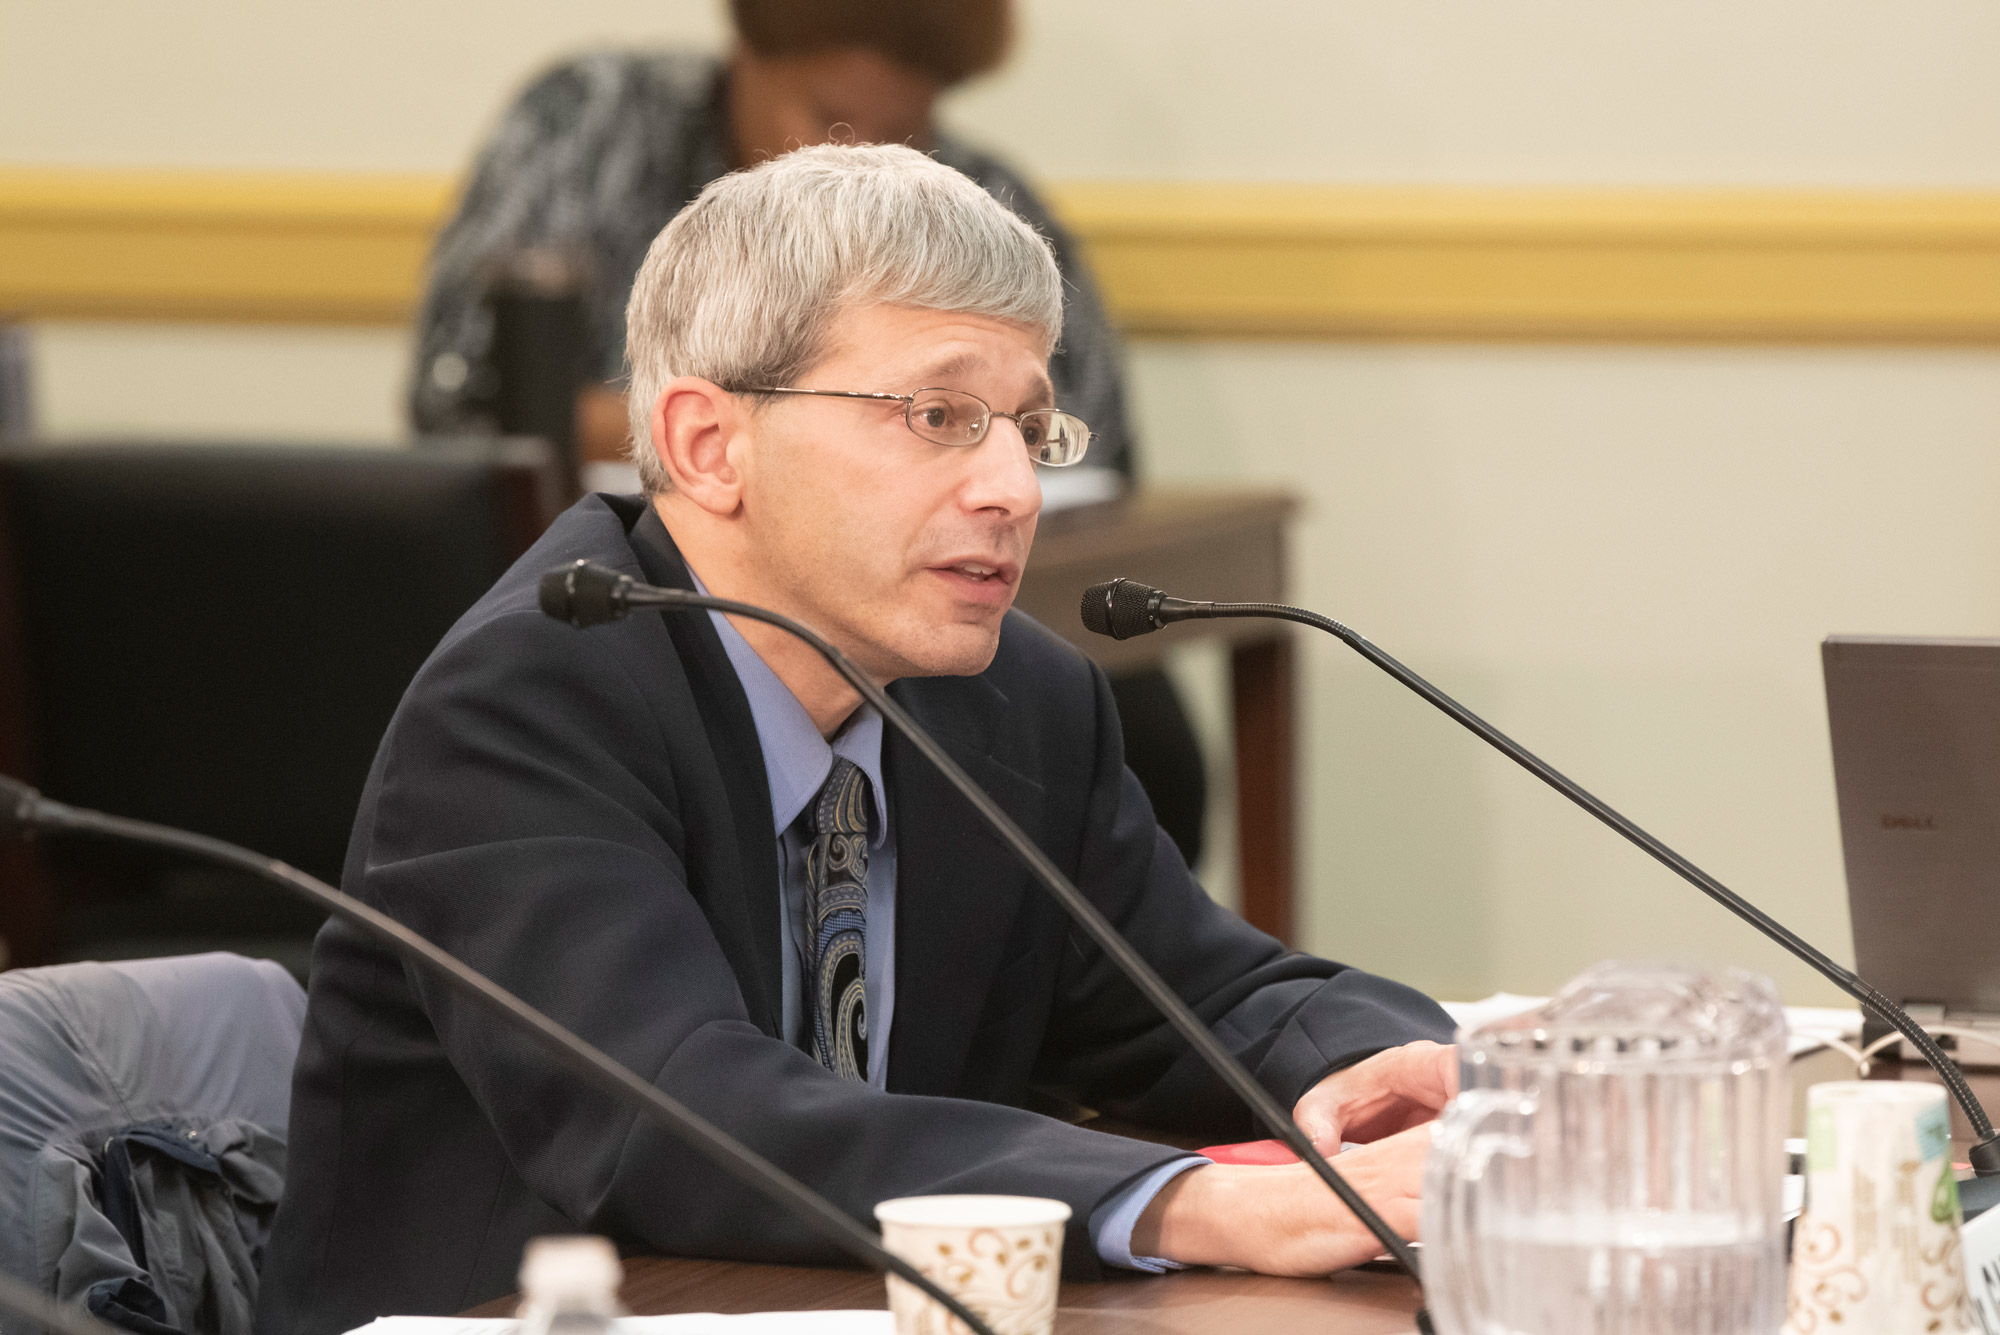 Michael Siegel, a School of Public Health professor of community health sciences, testifying before a legislative hearing of the subcommittee on health of the Committee on Energy & Commerce